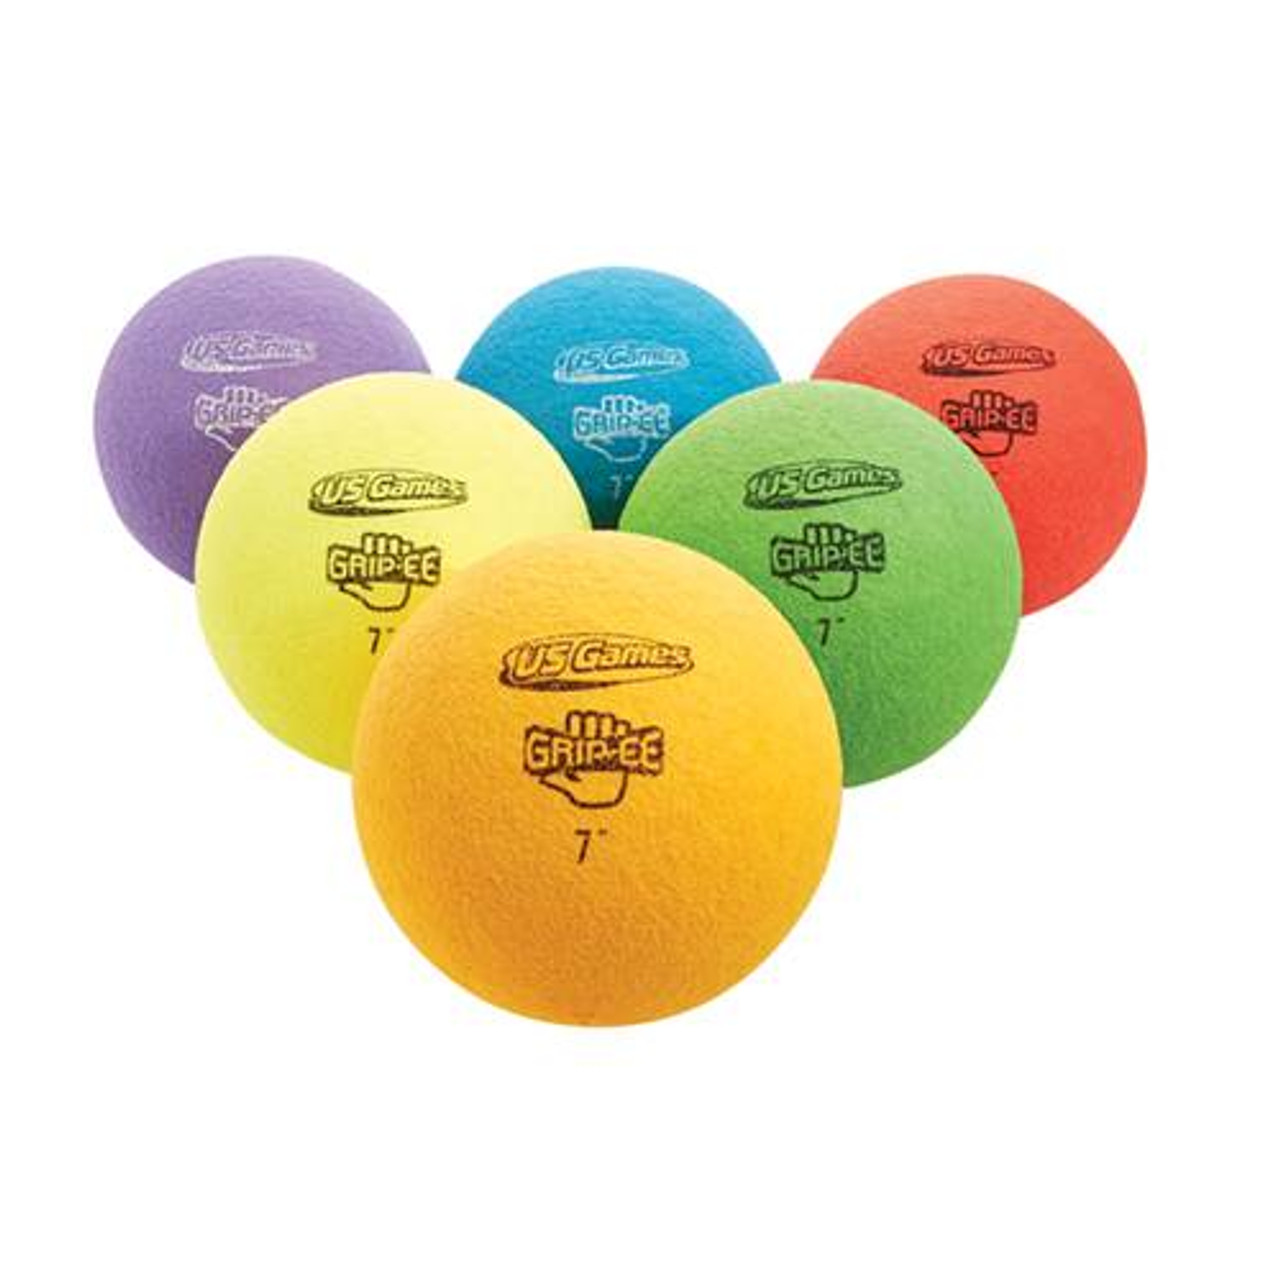 """Grippee 6.25"""" Ball Prism Pack"""